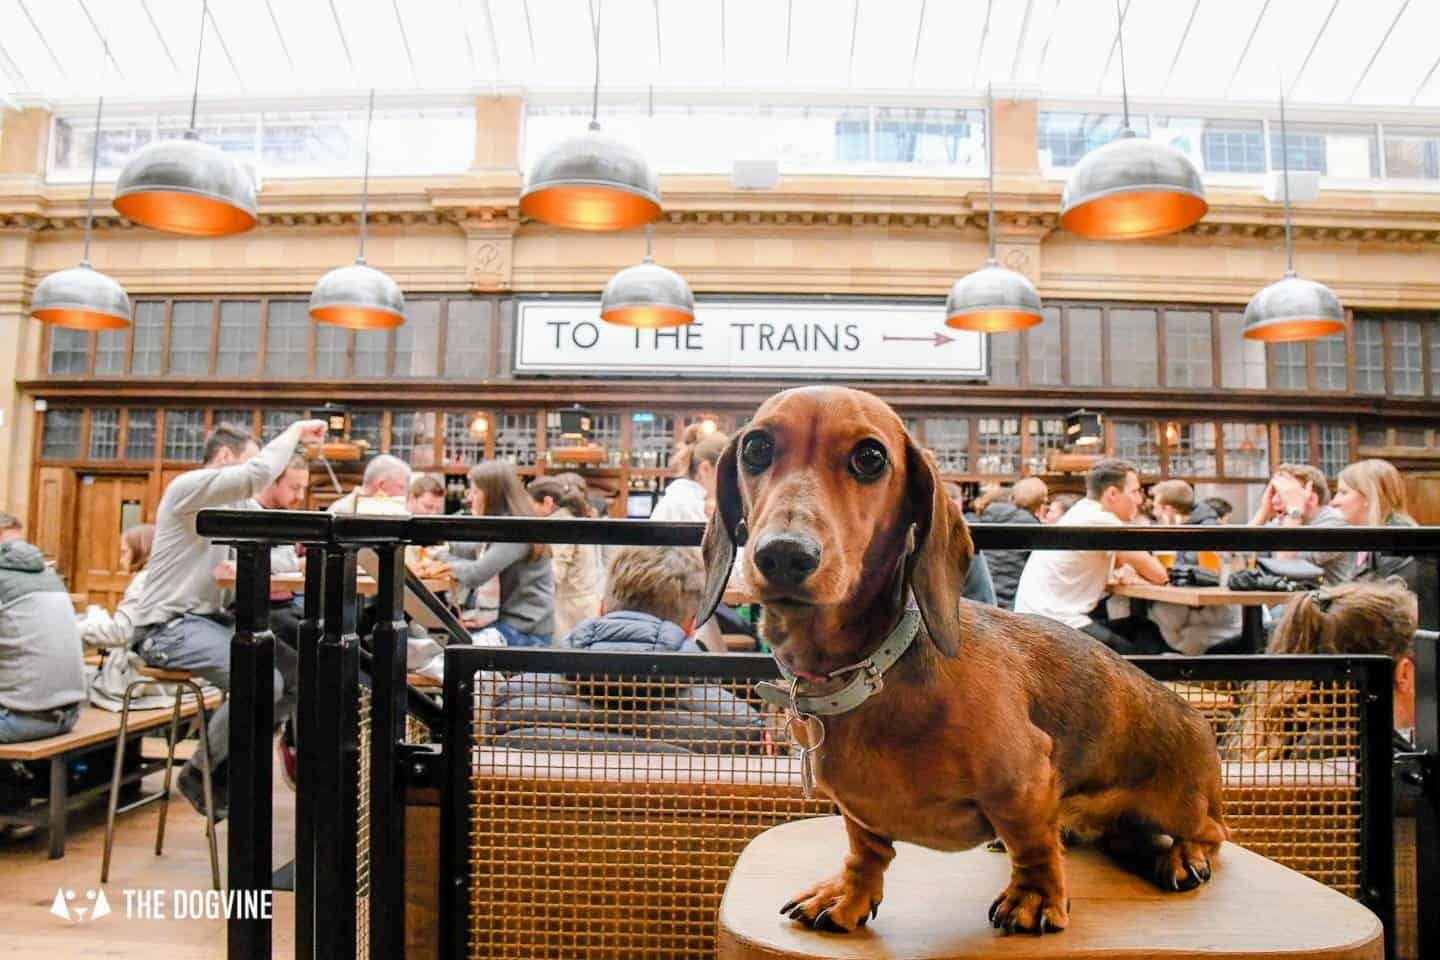 Dog-friendly Fulham - My Dog-friendly London - The Market Hall Fulham 3